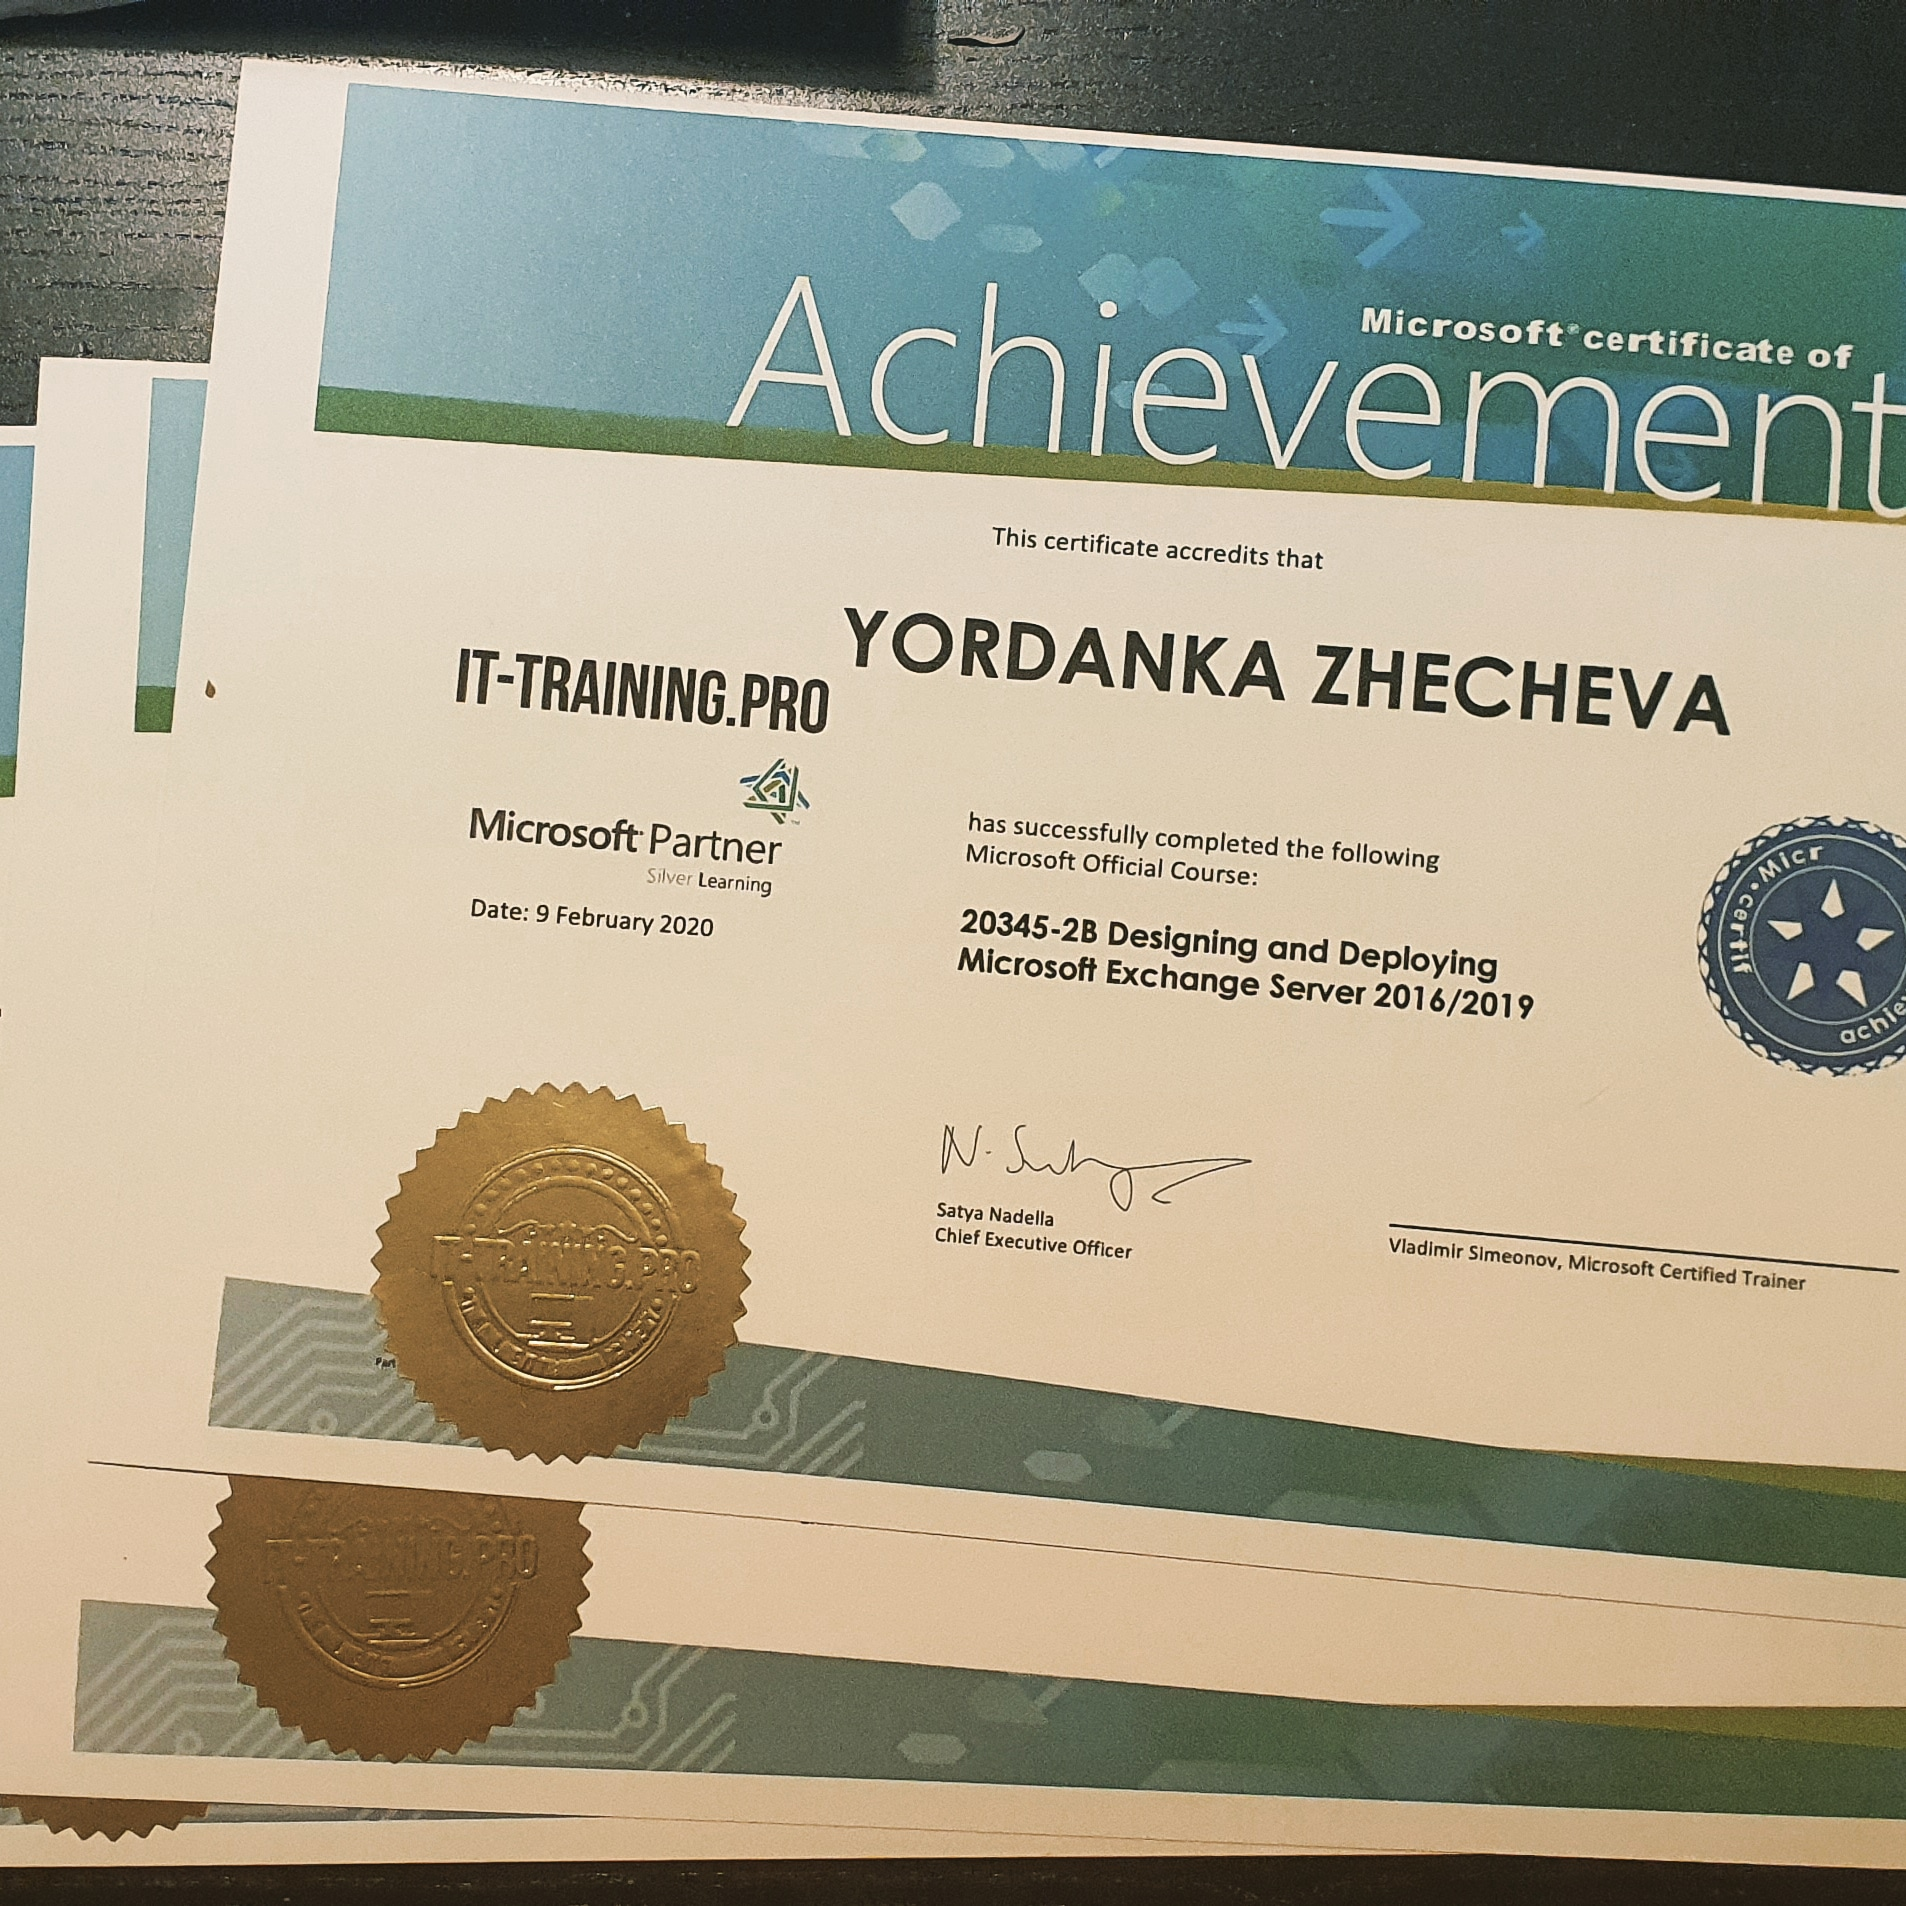 Course 20345-2 Designing and Deploying Exchange Server 2016/2019 Certificates of Completion